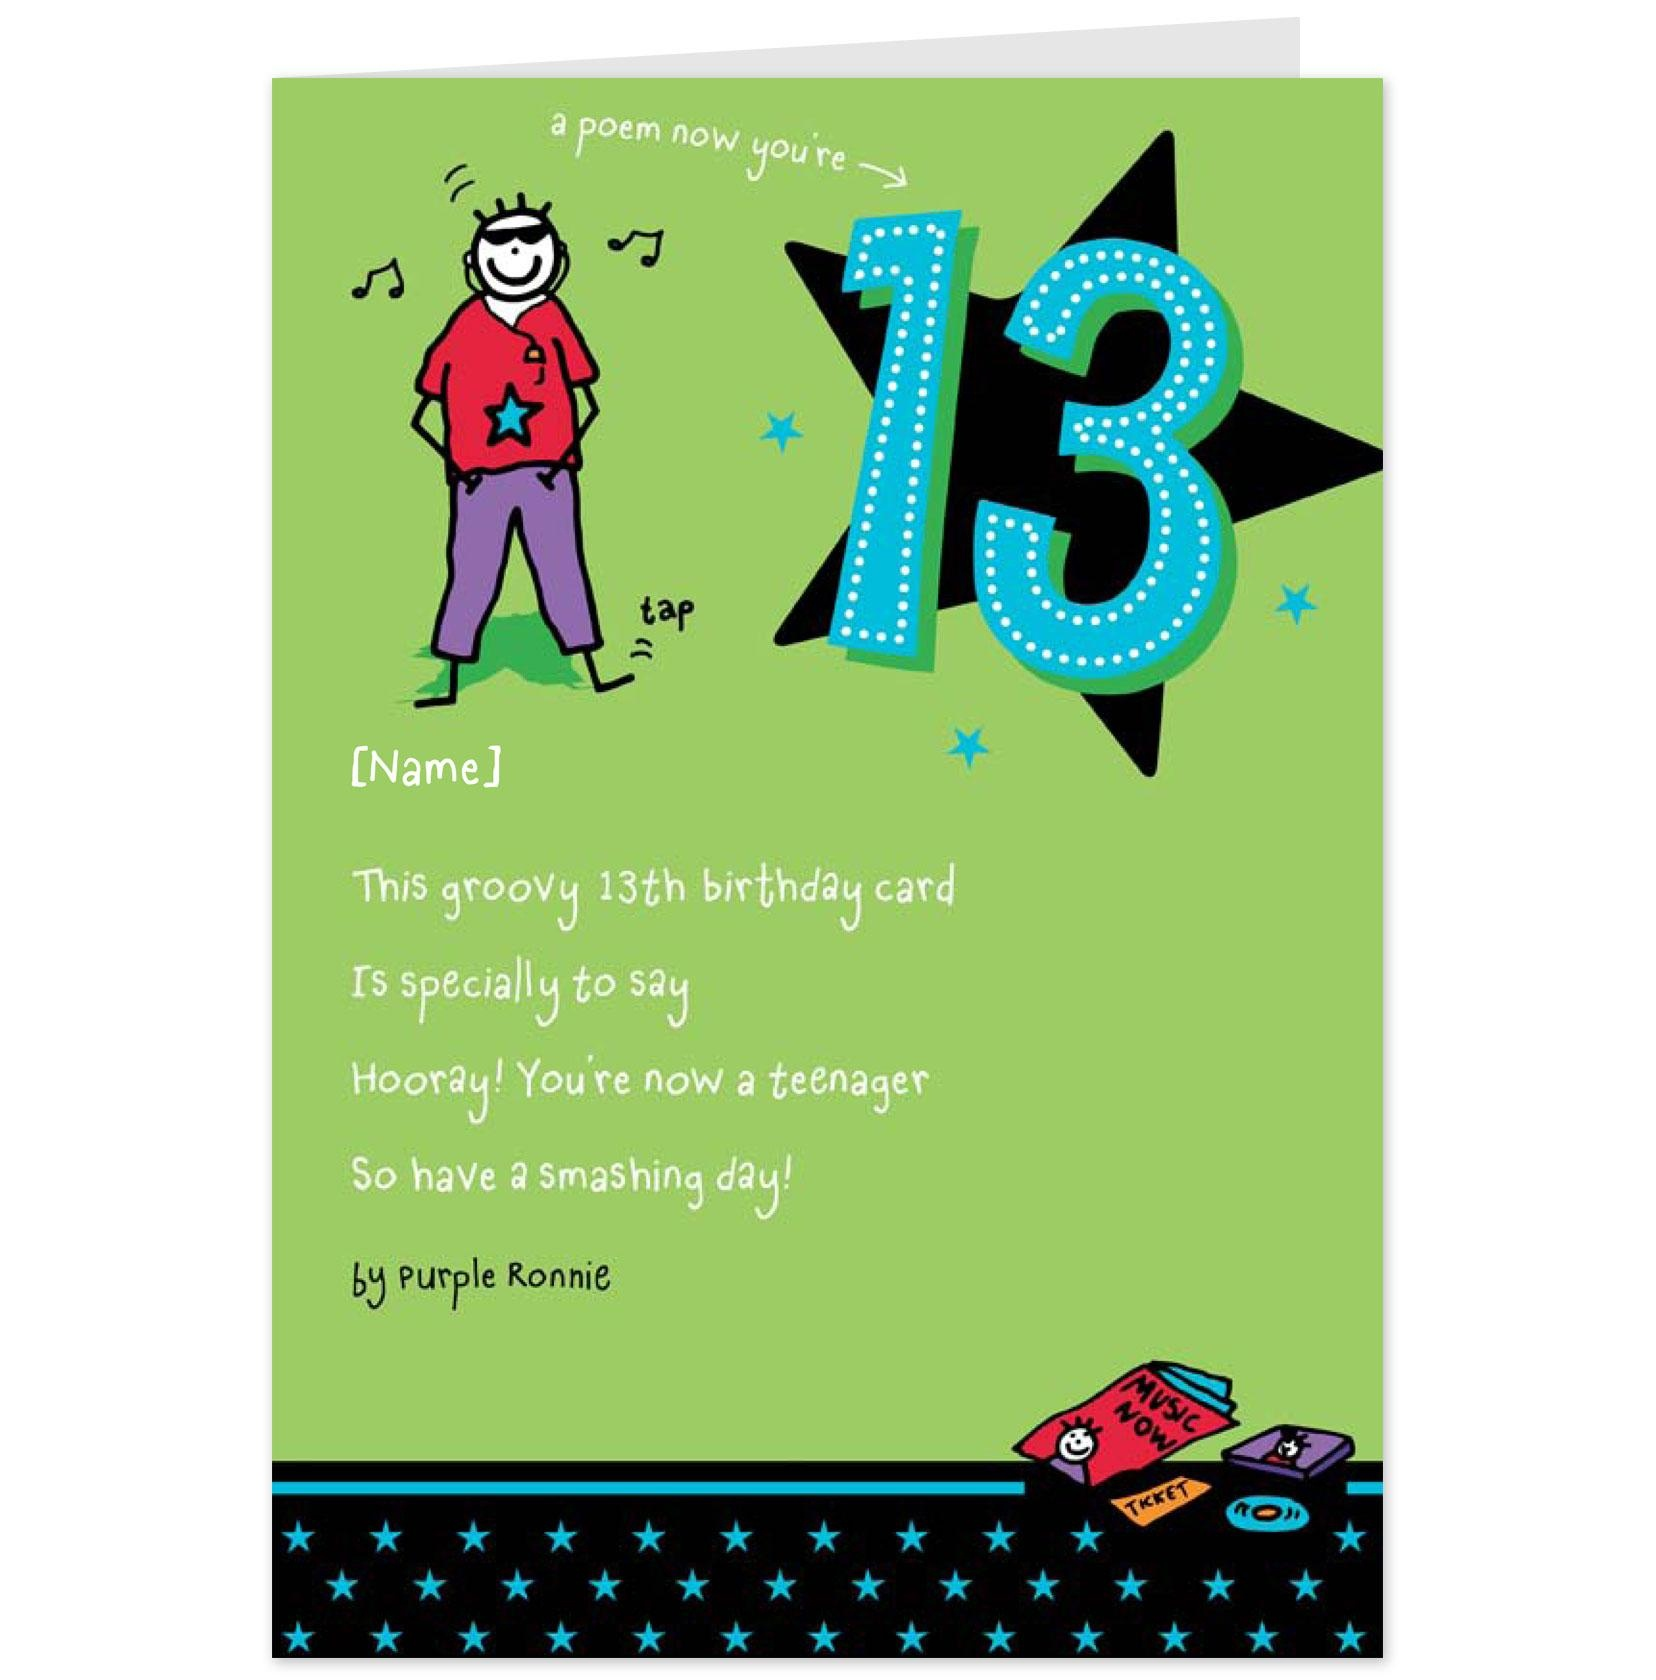 98+ Funny 13Th Birthday Cards Printable - Funny Printable Birthday - 13Th Birthday Cards Printable Free